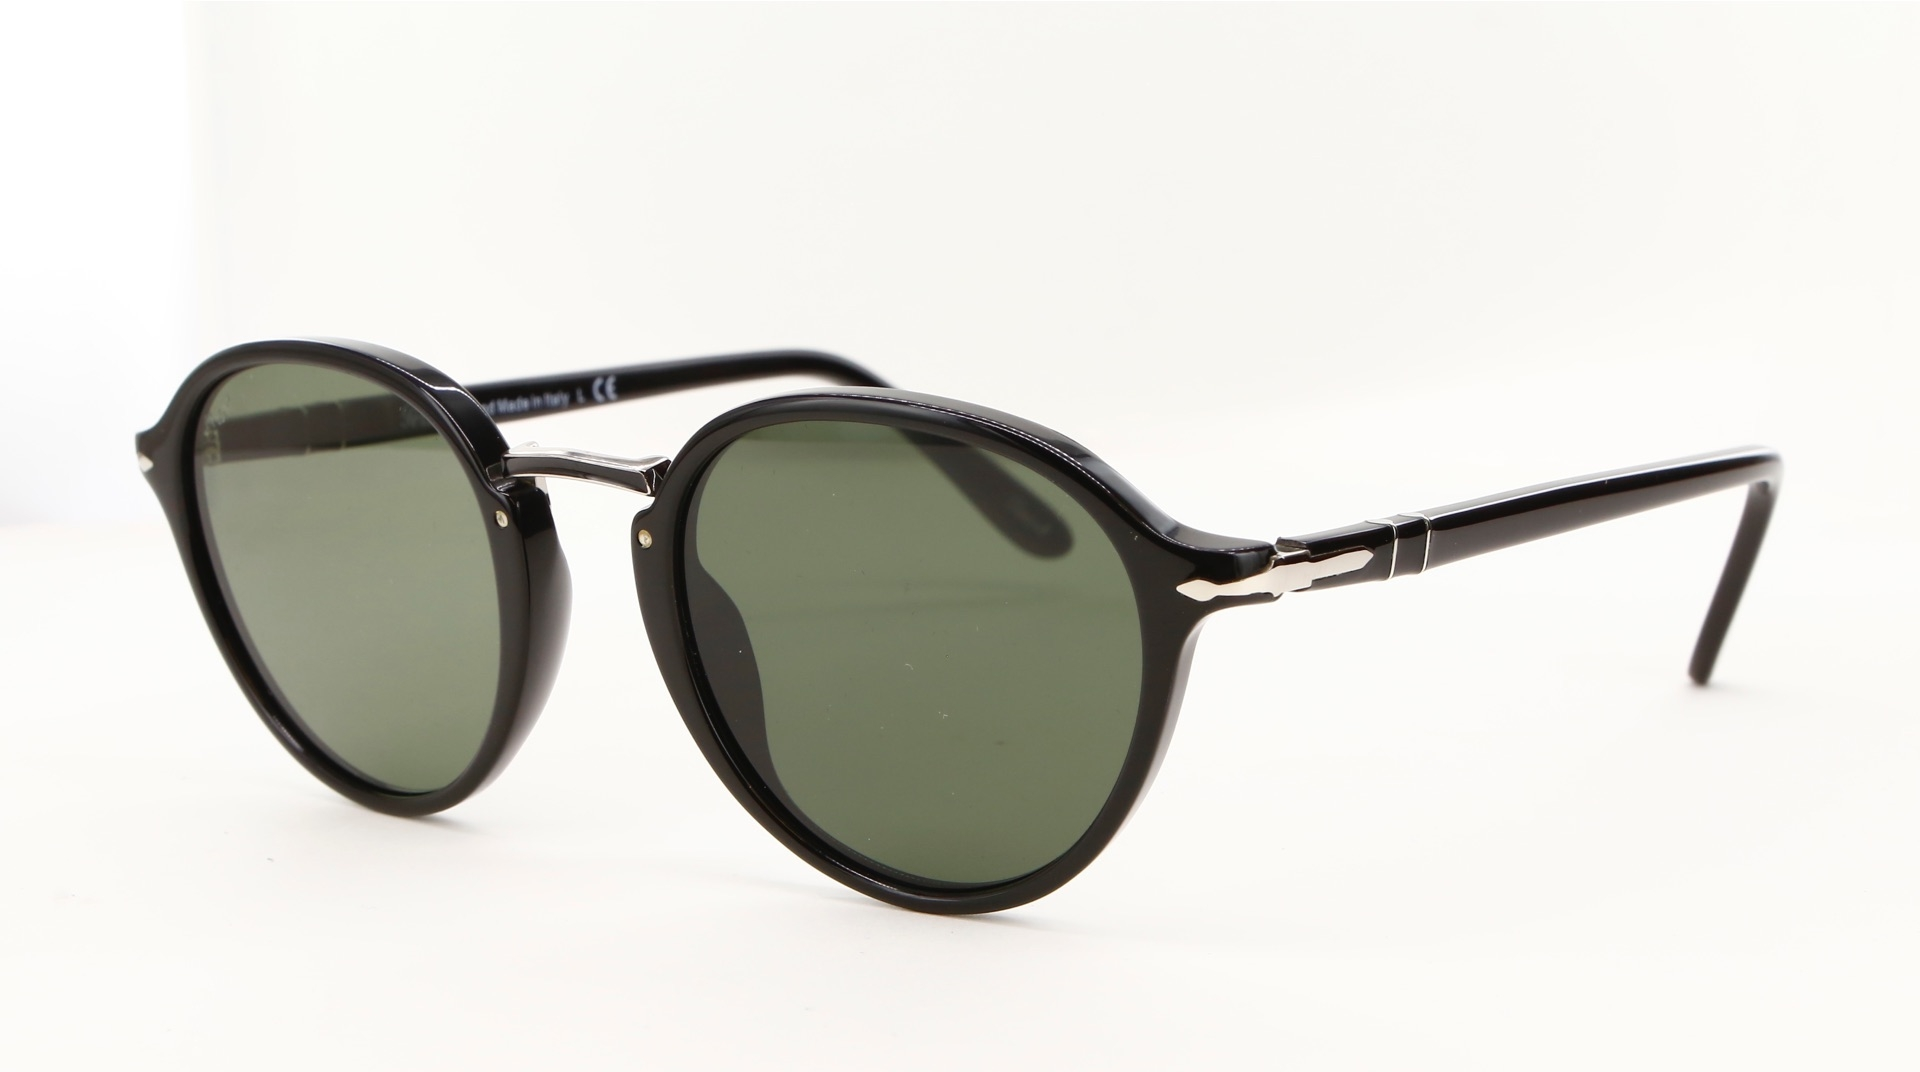 Persol - ref: 80847